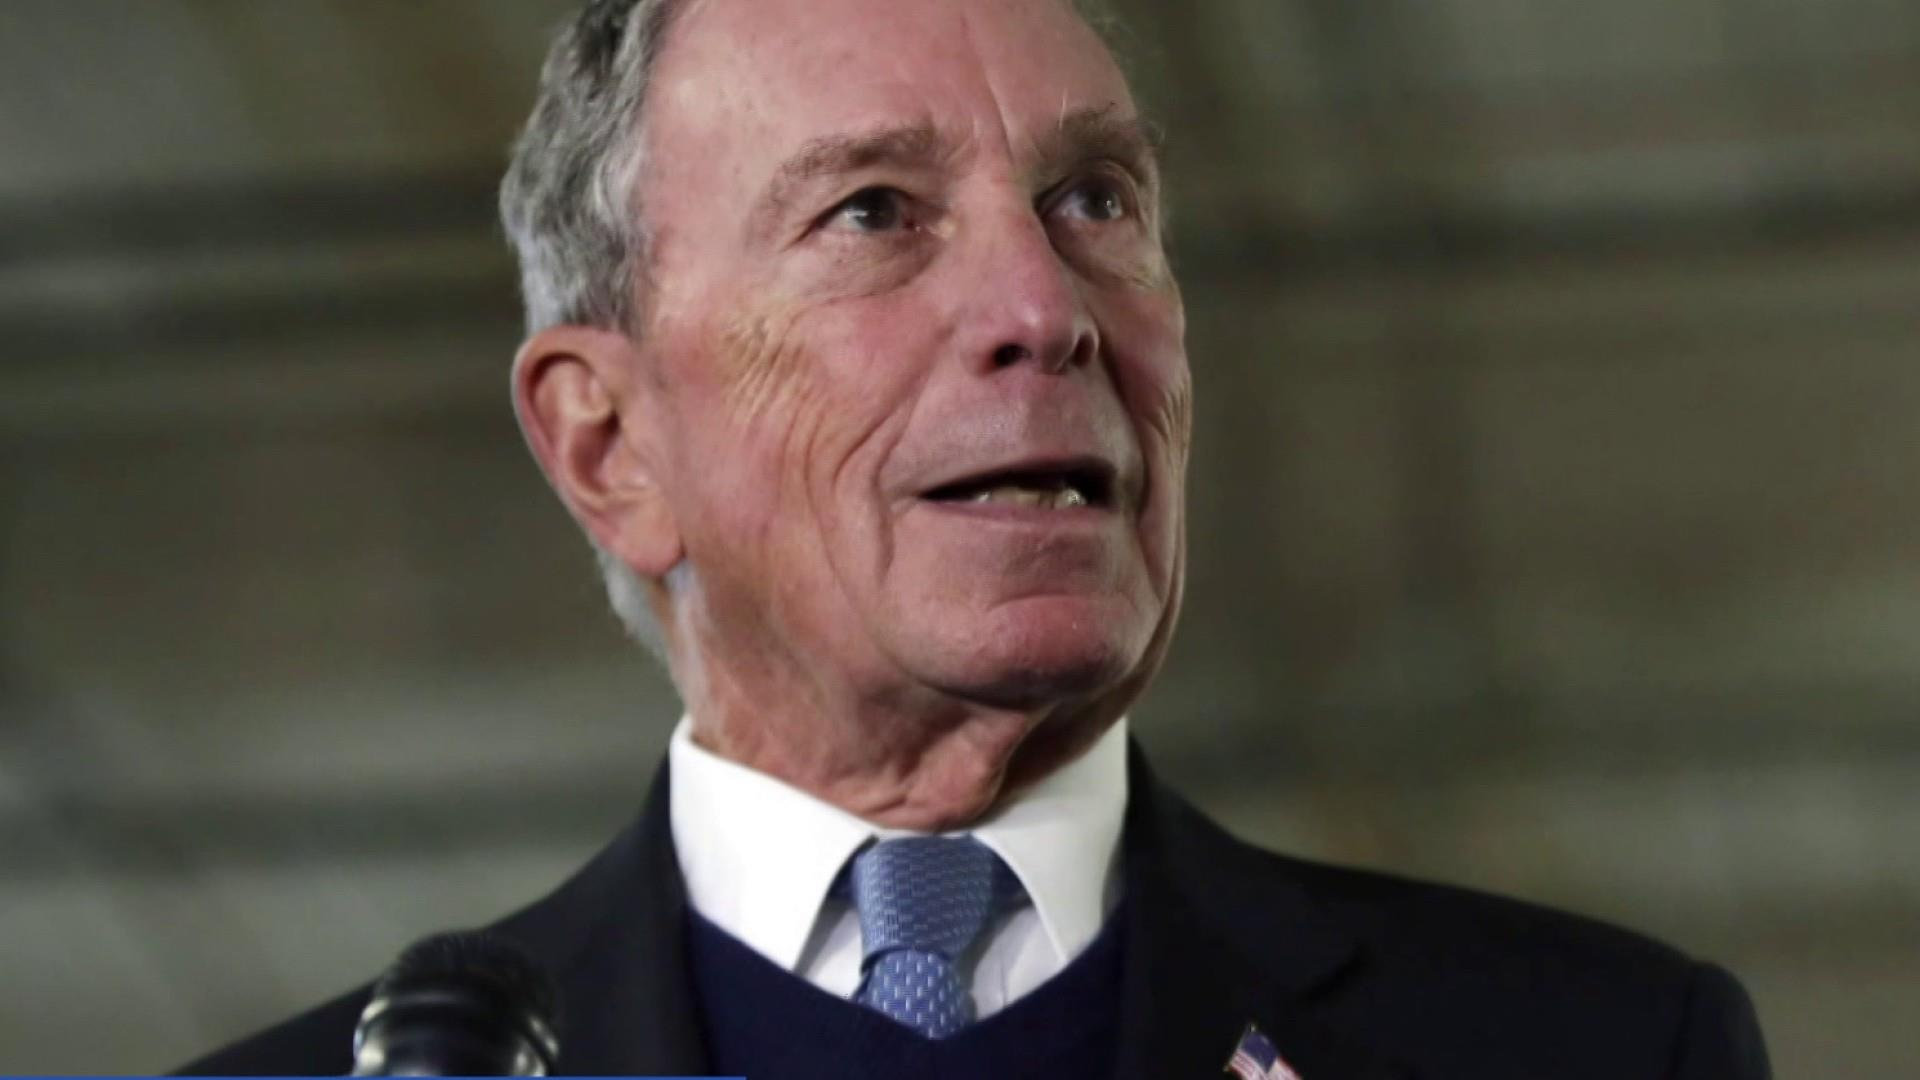 Bloomberg under scrutiny after signaling presidential run